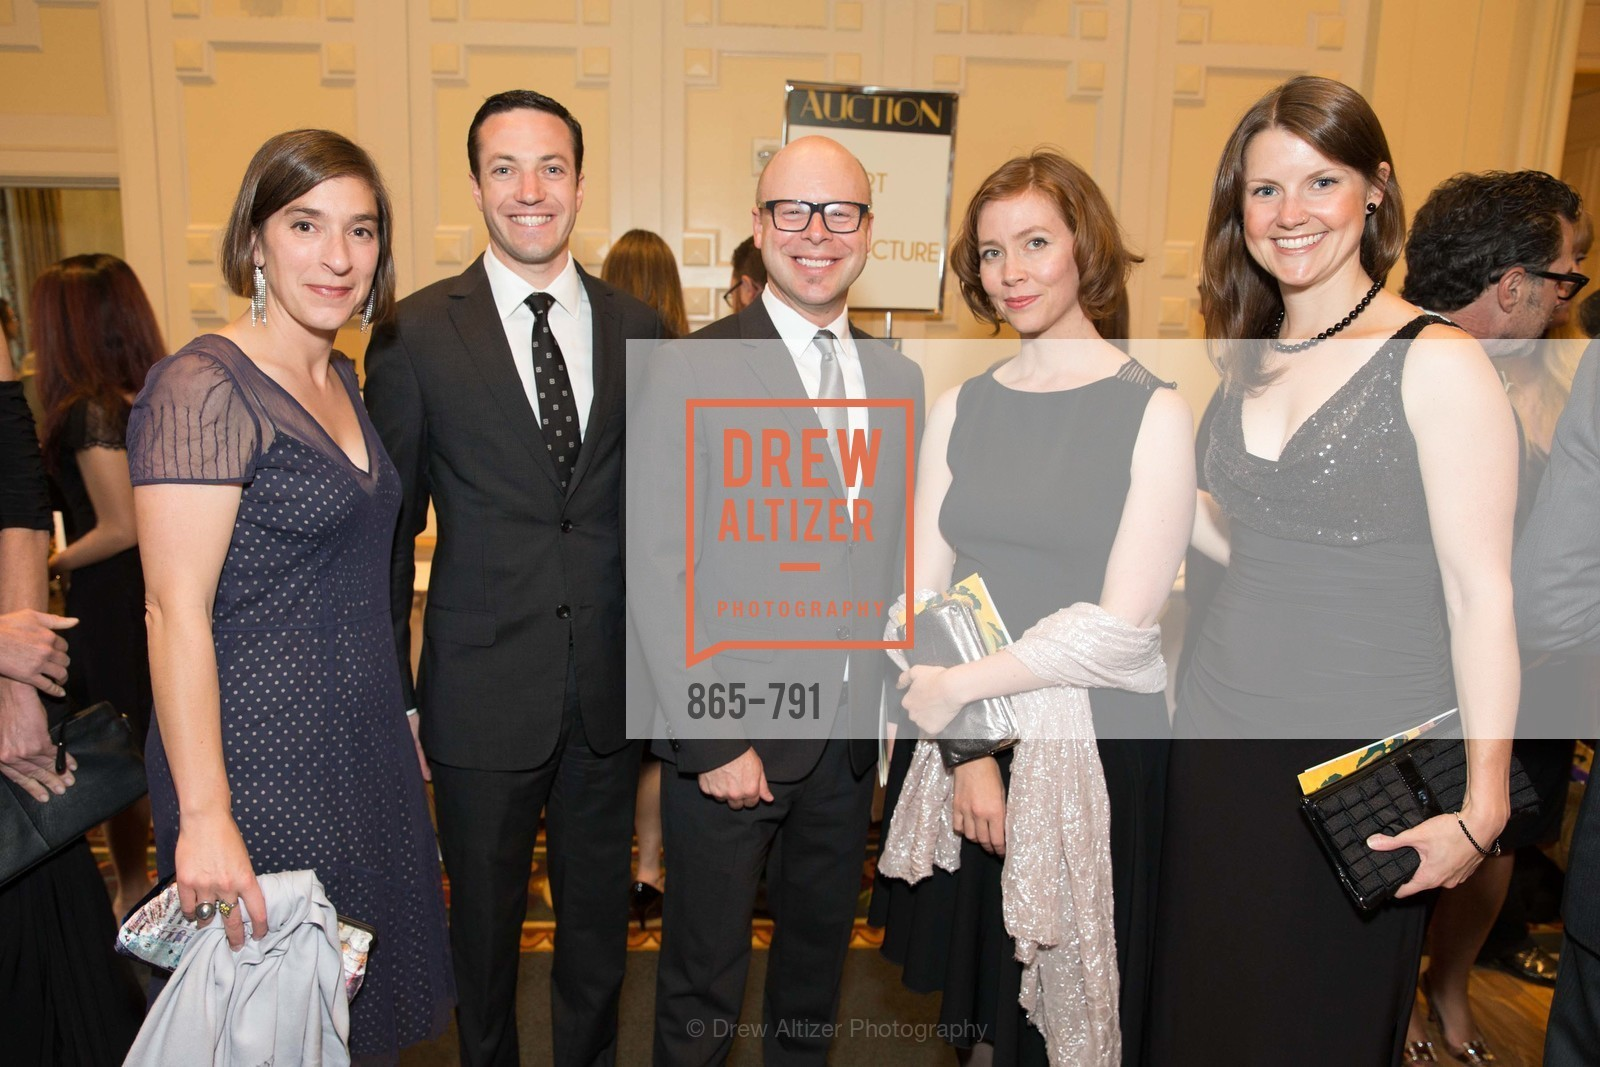 Phoebe Schenker, Andrew Wolfram, SAN FRANCISCO HERITAGE Soiree 2015, US, April 19th, 2015,Drew Altizer, Drew Altizer Photography, full-service agency, private events, San Francisco photographer, photographer california